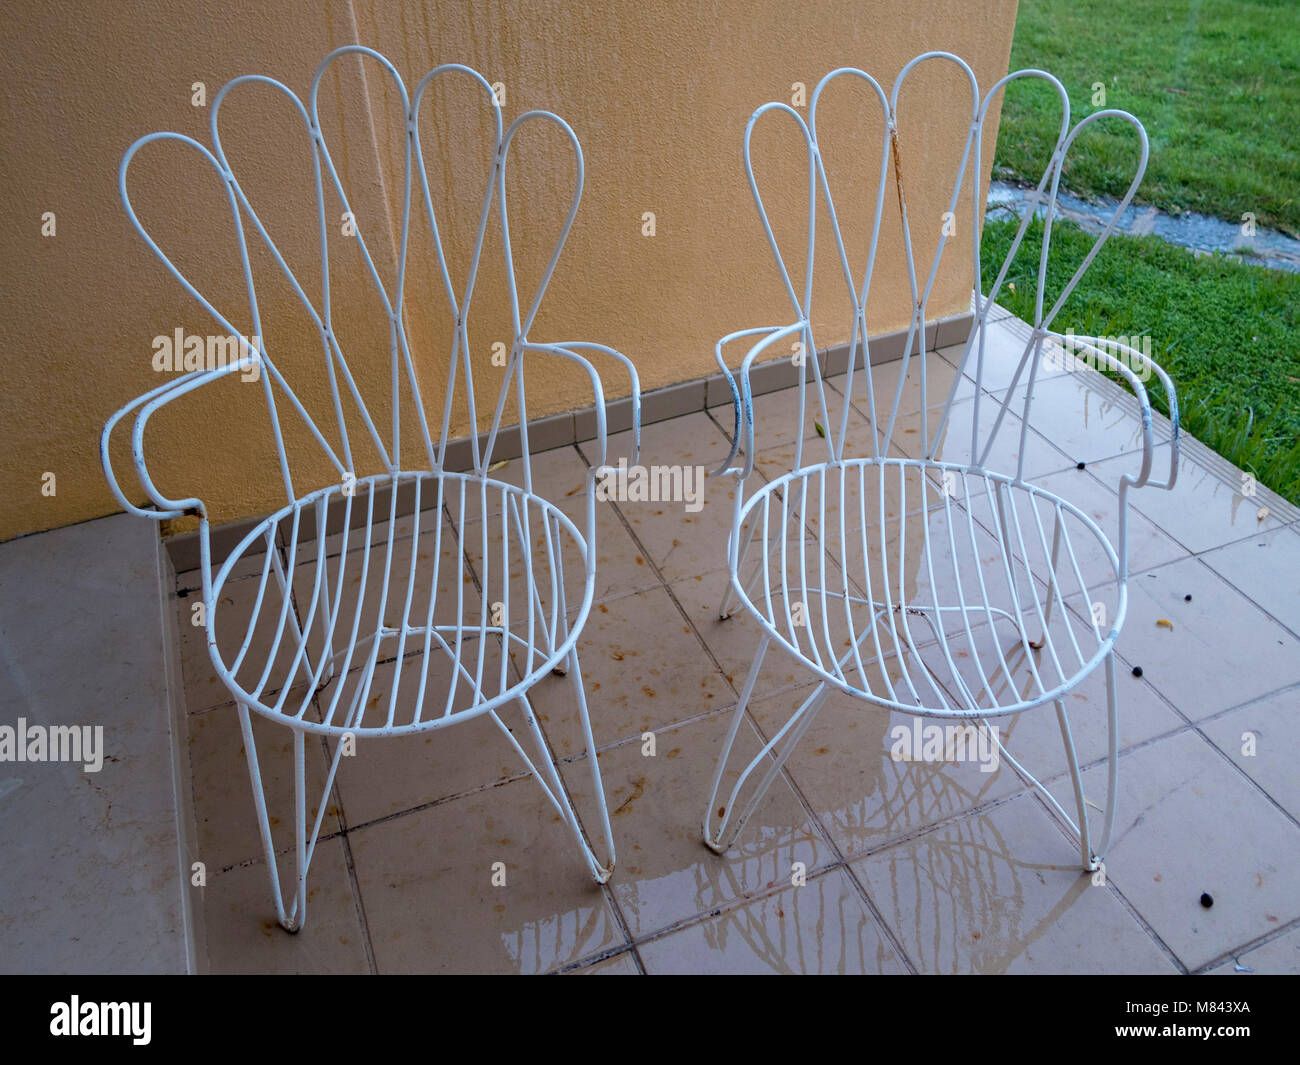 Cast Iron Chairs Stock Photos & Cast Iron Chairs Stock Images - Alamy